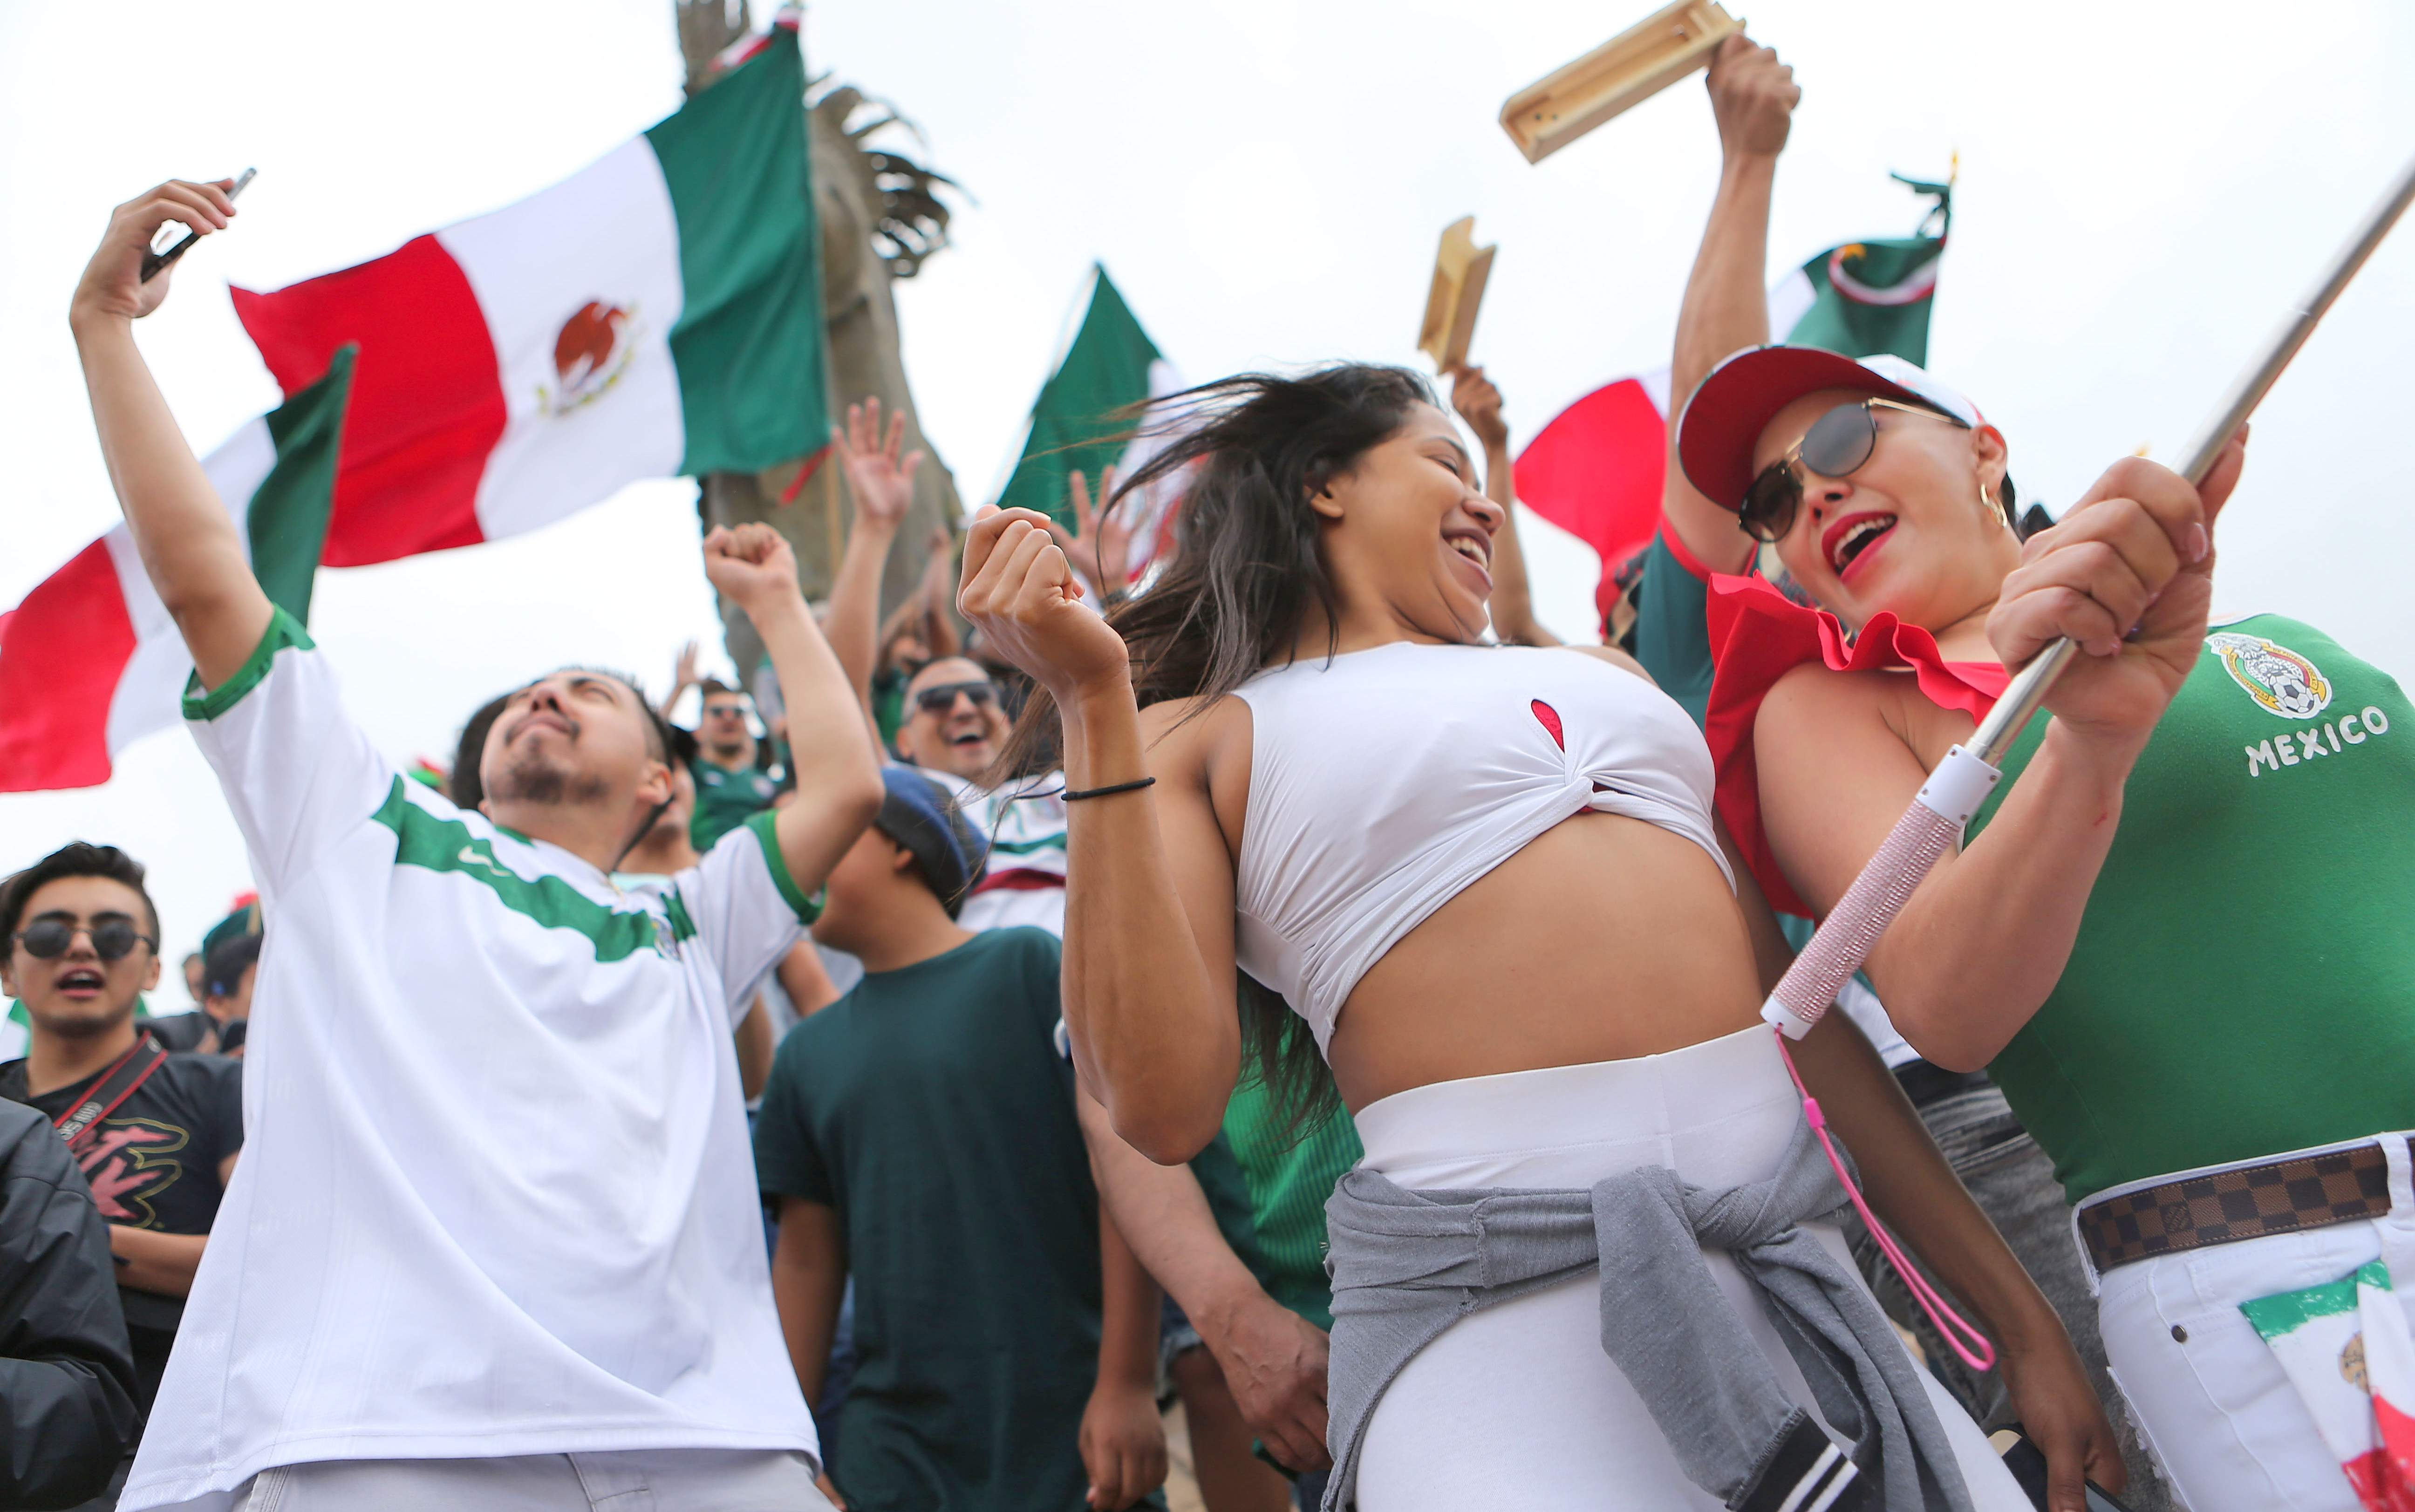 Mexico fans celebrate after their 2-1 victory over South Korea during the World Cup in Tijuana, Mexico, on Saturday